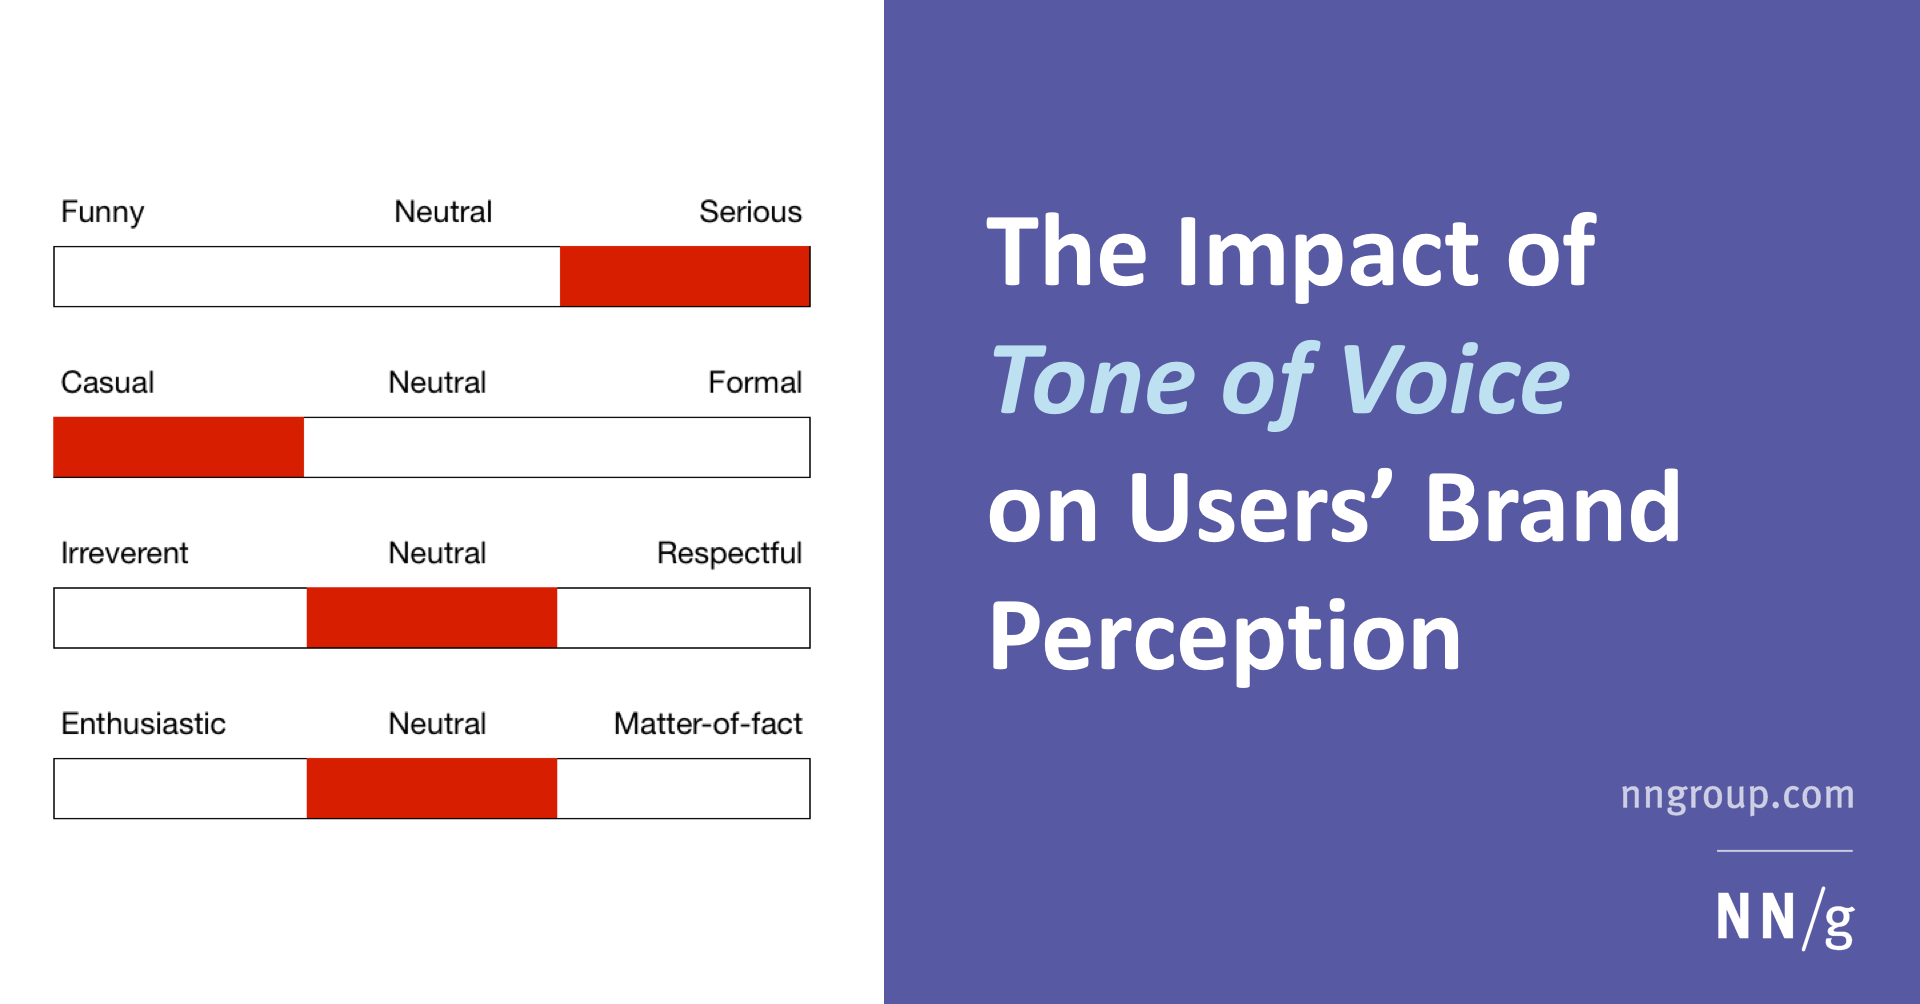 The Impact of Tone of Voice on Users' Brand Perception (Nielsen Norman Group UX research)